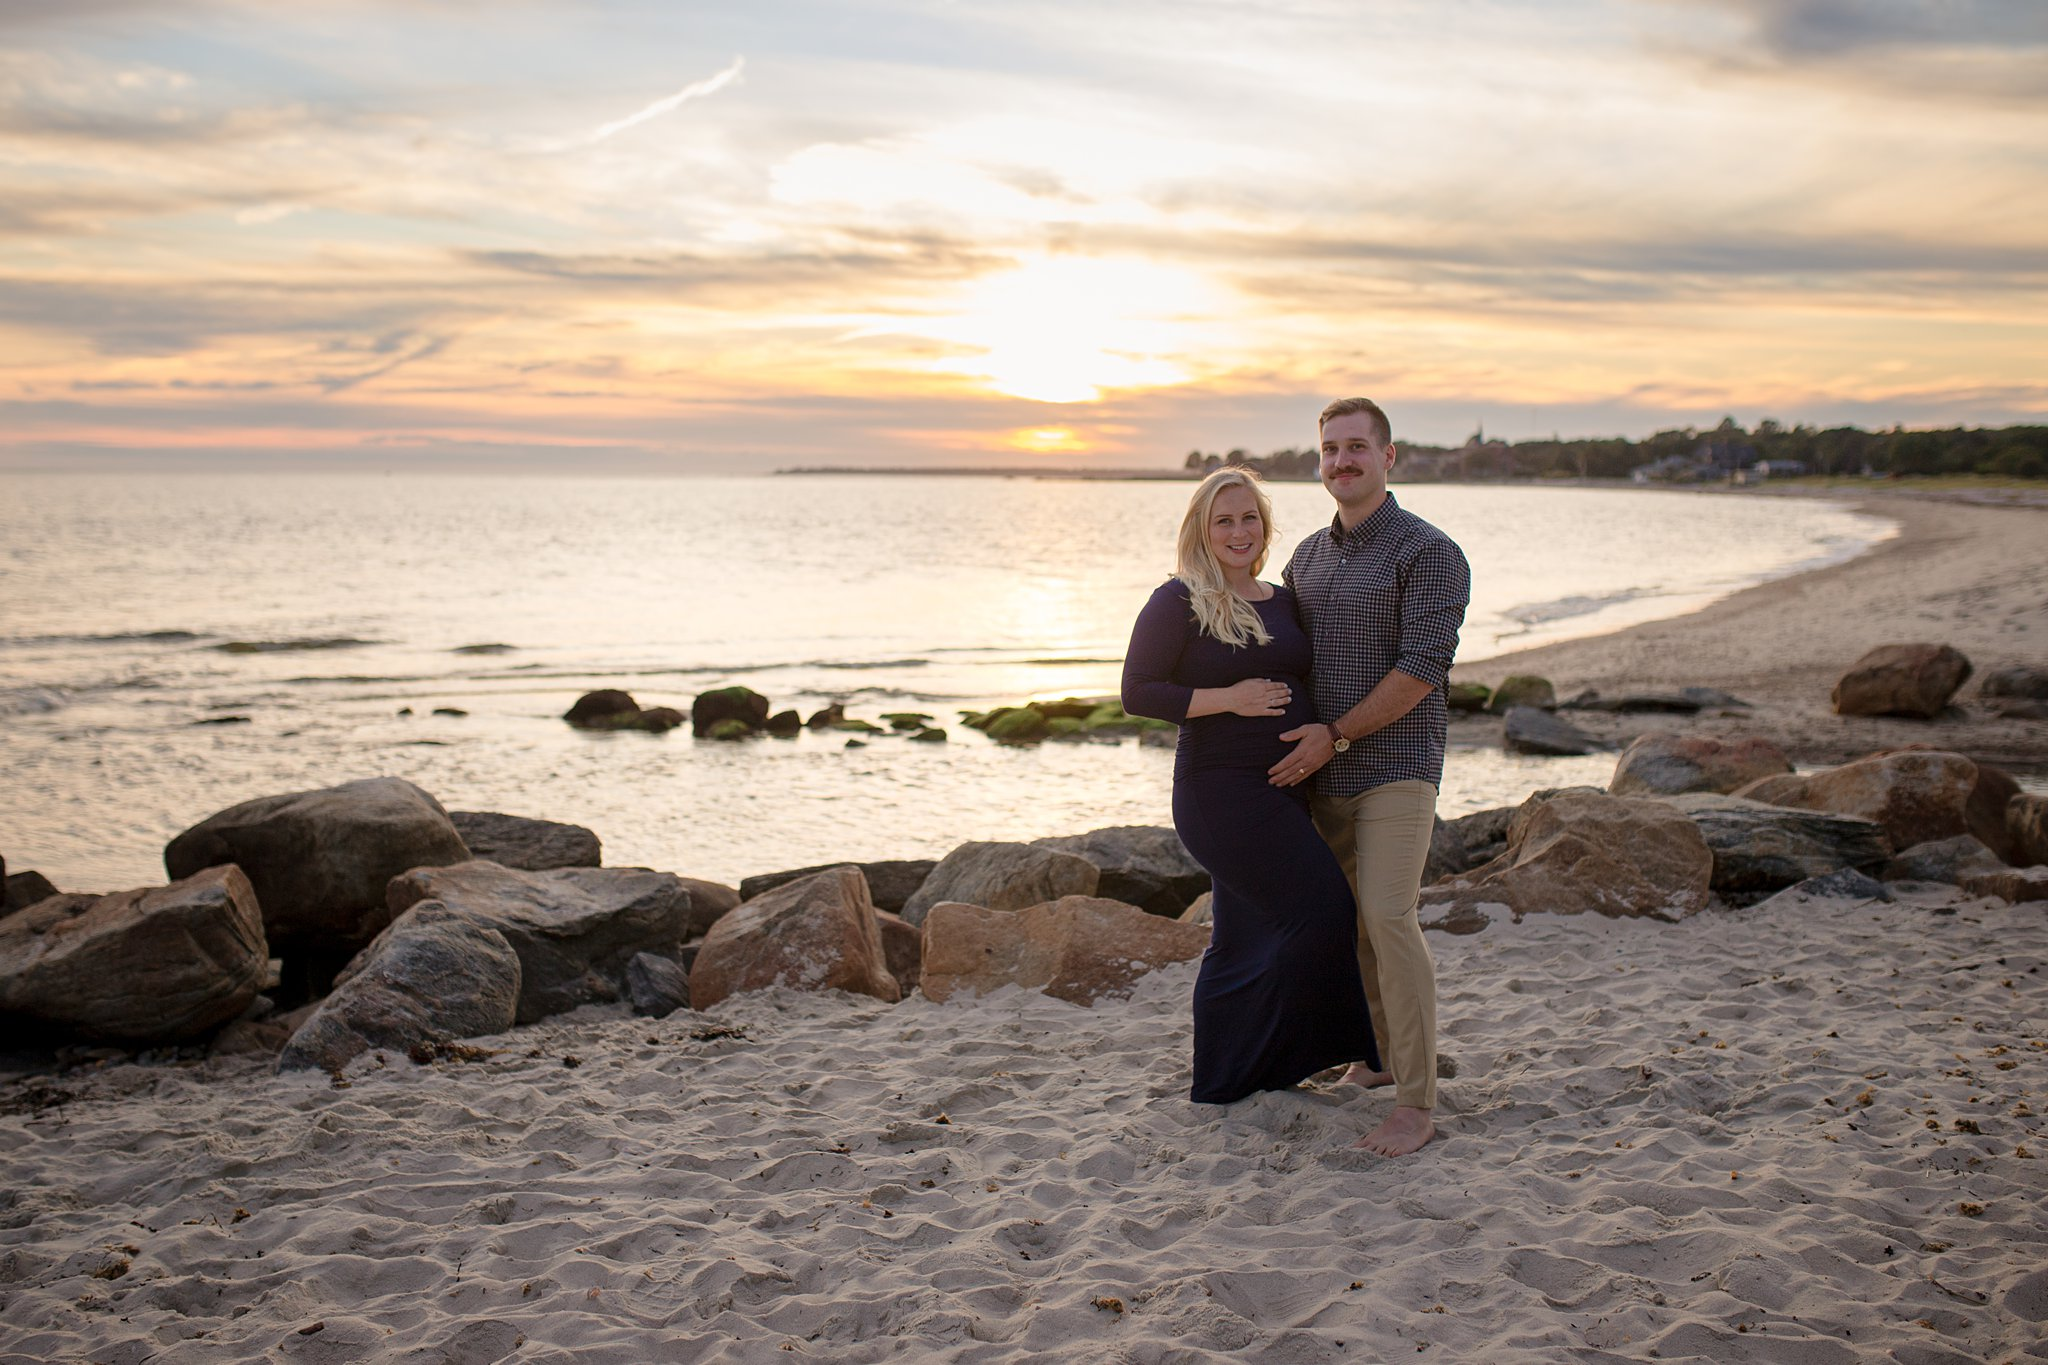 a couple at sunset on the beach for baby bump pictures